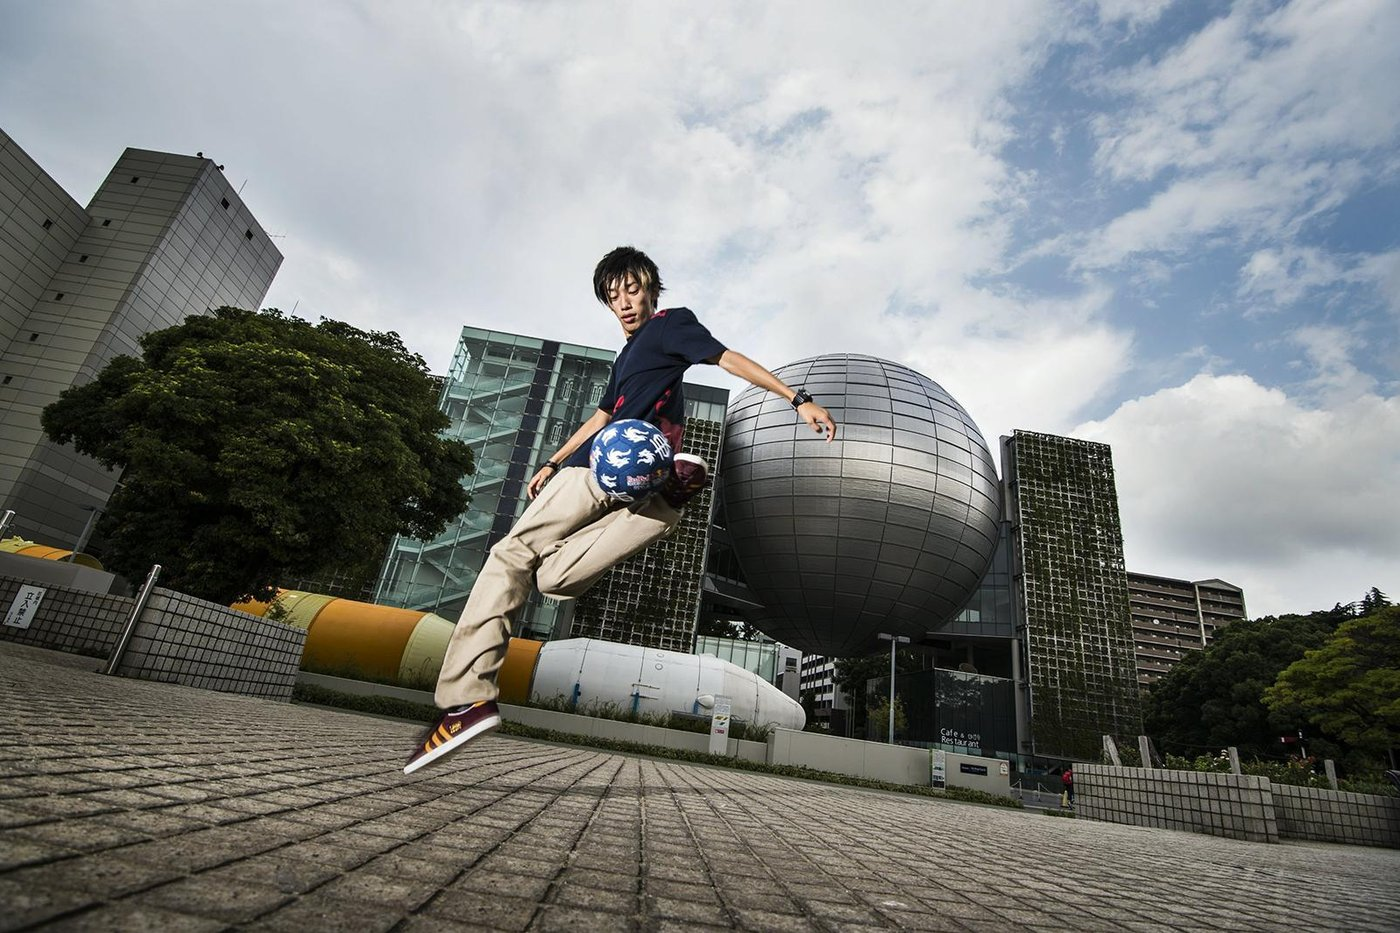 Kotaro Tokuda performs prior to the Red Bull Street Style Japan Final 2014 at the Sirakawa park in Nagoya, Japan on September 5th, 2014 // Naoyuki Shibata/Red Bull Content Pool // P-20141002-00139 // Usage for editorial use only // Please go to www.redbullcontentpool.com for further information. //